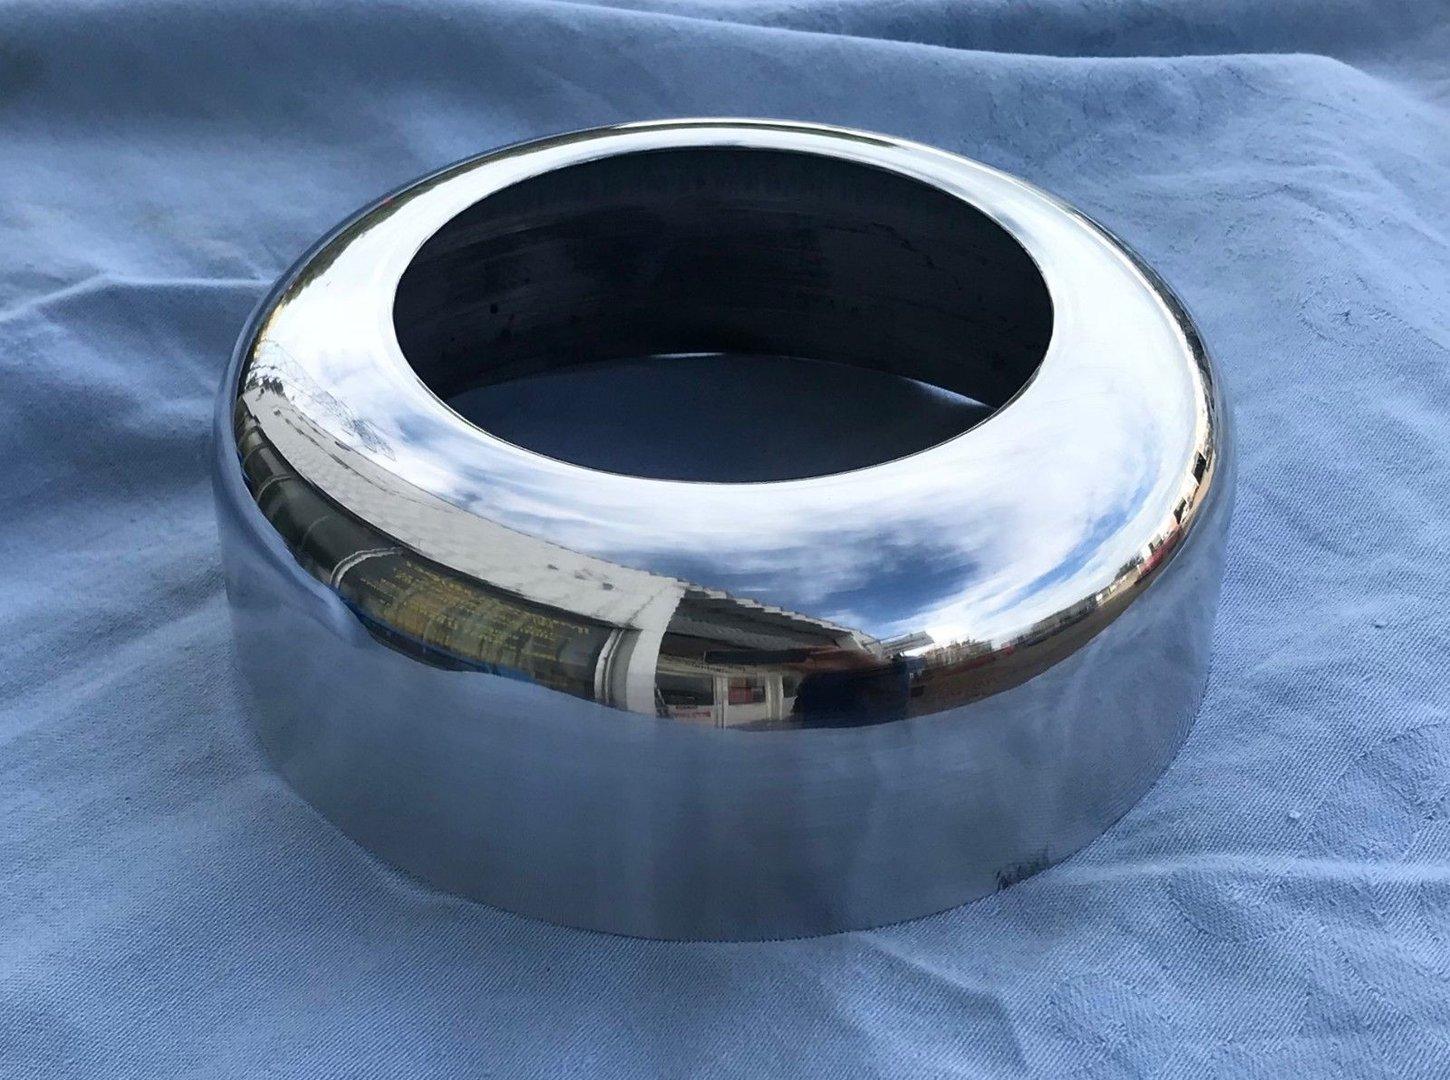 STANDARD 6 3/4 Inch (170mm) COWL TO SUIT LEGIONAIRE AND PUPPETEER 2 3/4 (70mm) Deep